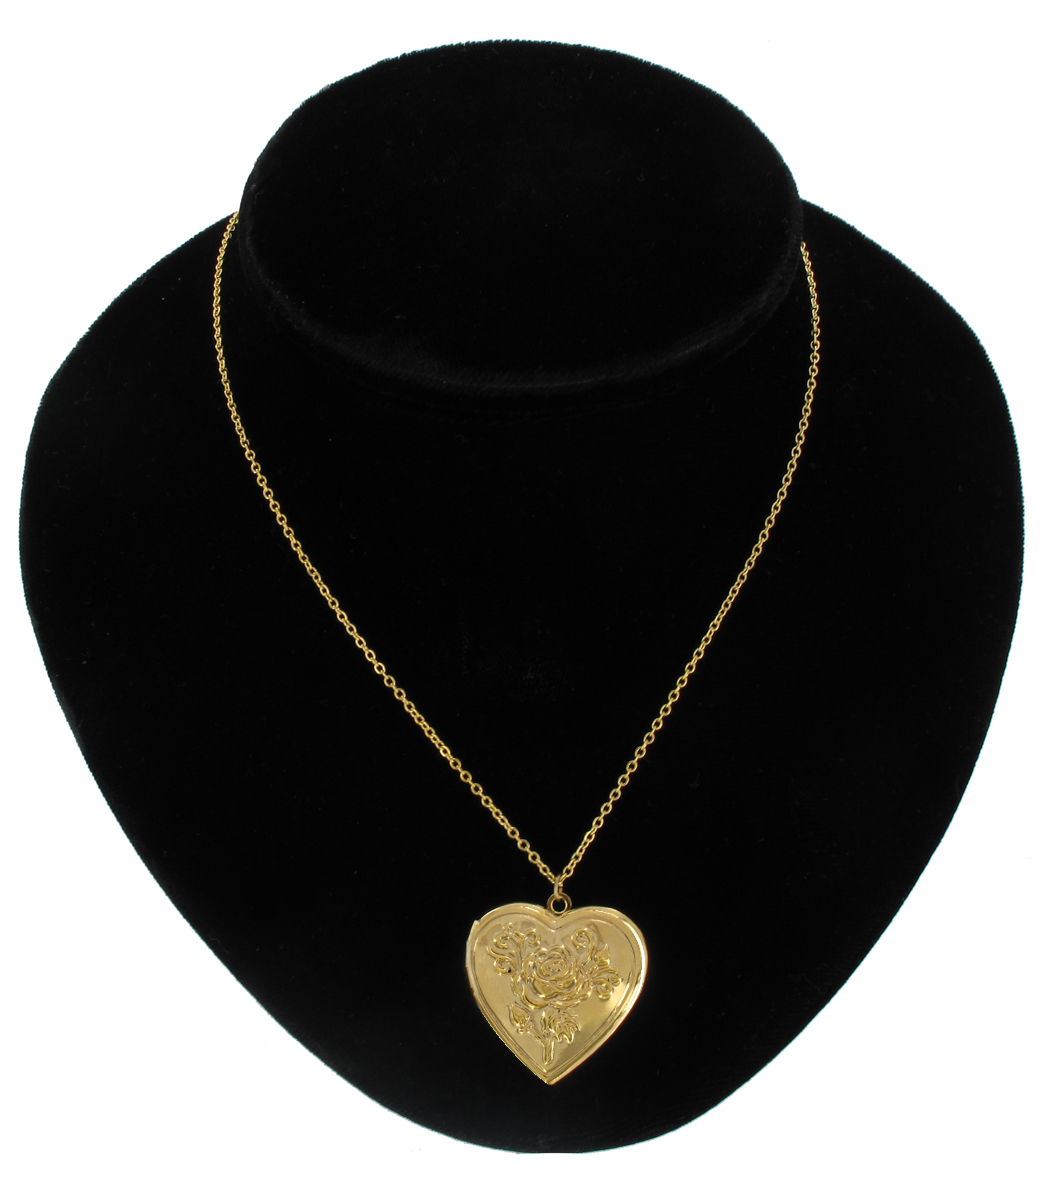 wid hei g with id ed fit jewelry constrain pendant diamonds necklaces heart pendants gold in rose locket small fmt